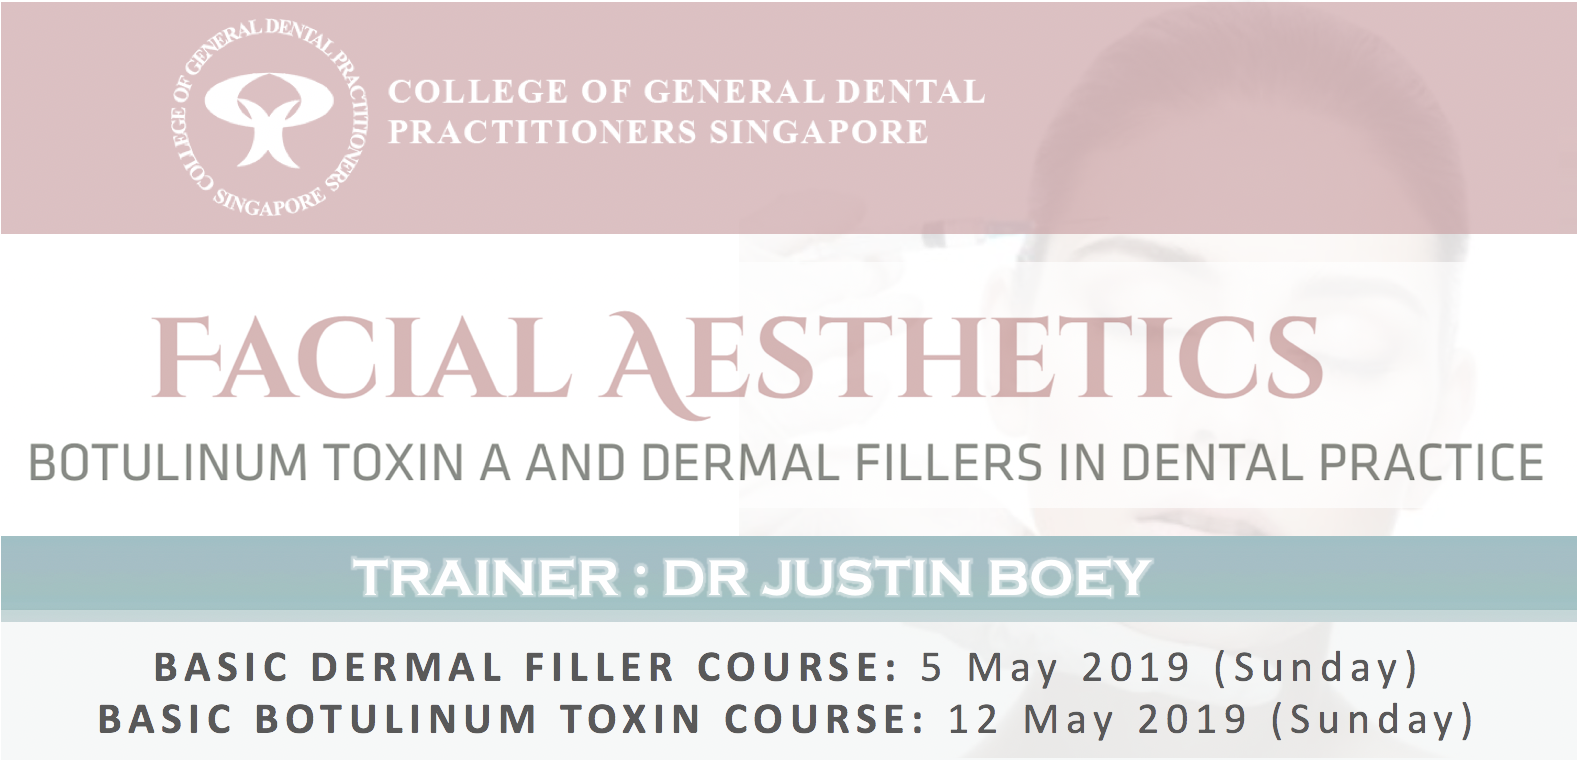 Facial Aesthetics: Botulinum Toxin A and Dermal Fillers in Dental Practice